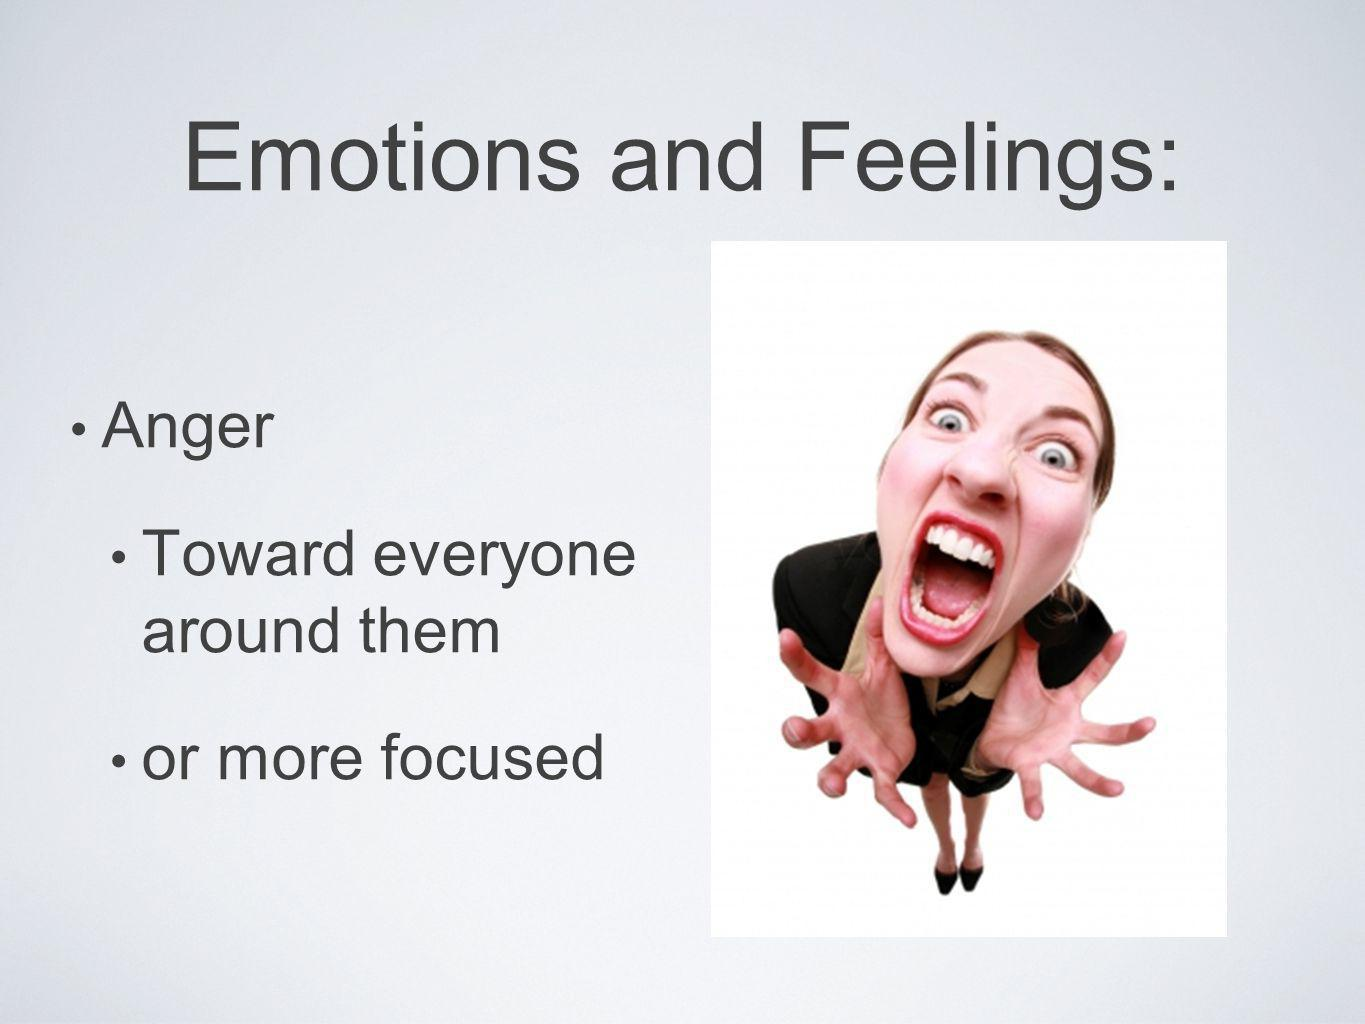 Emotions and Feelings: Anger Toward everyone around them or more focused